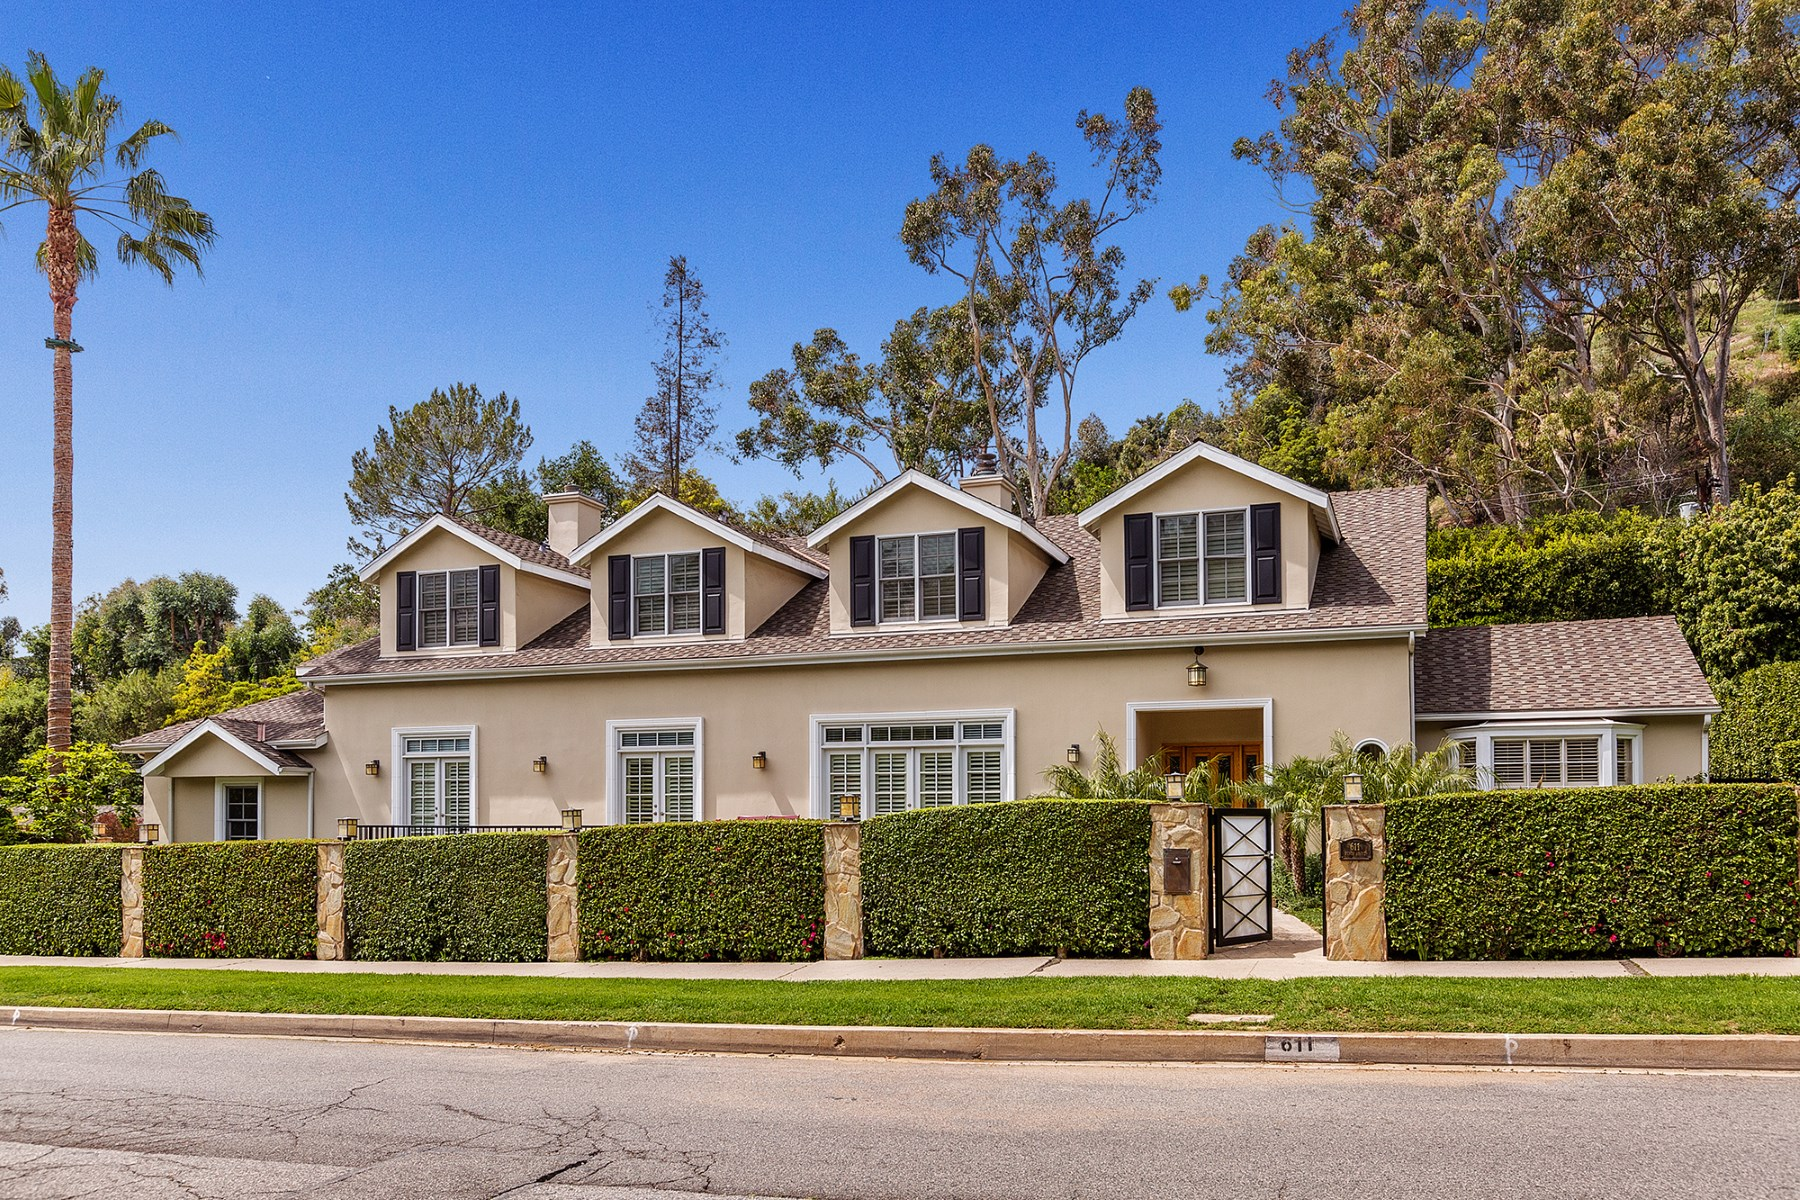 Vivienda unifamiliar por un Venta en Exceptional Brentwood Home 611 North Bundy Drive Brentwood, Los Angeles, California, 90049 Estados Unidos